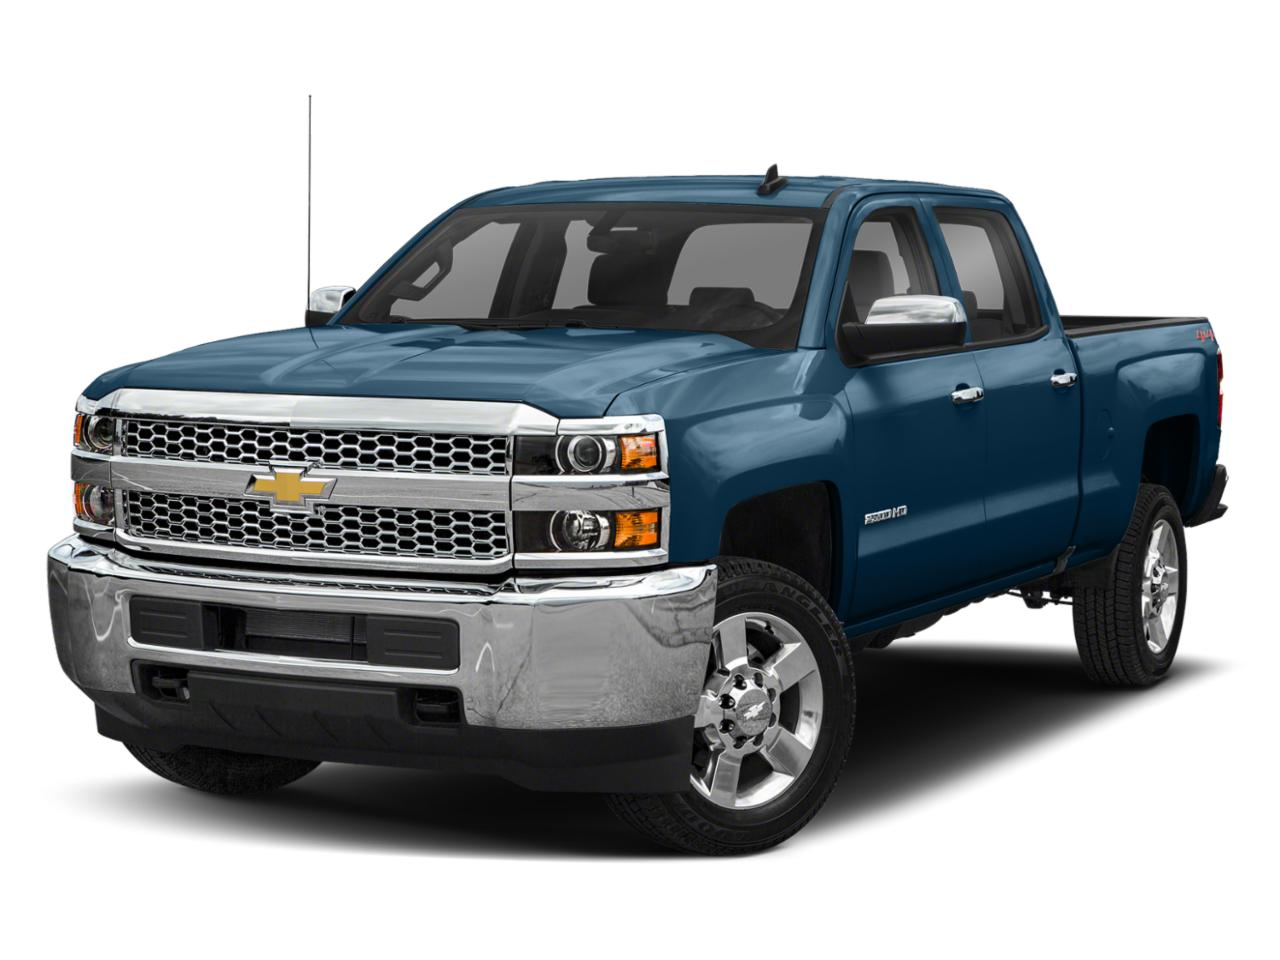 2019 Chevrolet Silverado 2500HD Vehicle Photo in Anchorage, AK 99515